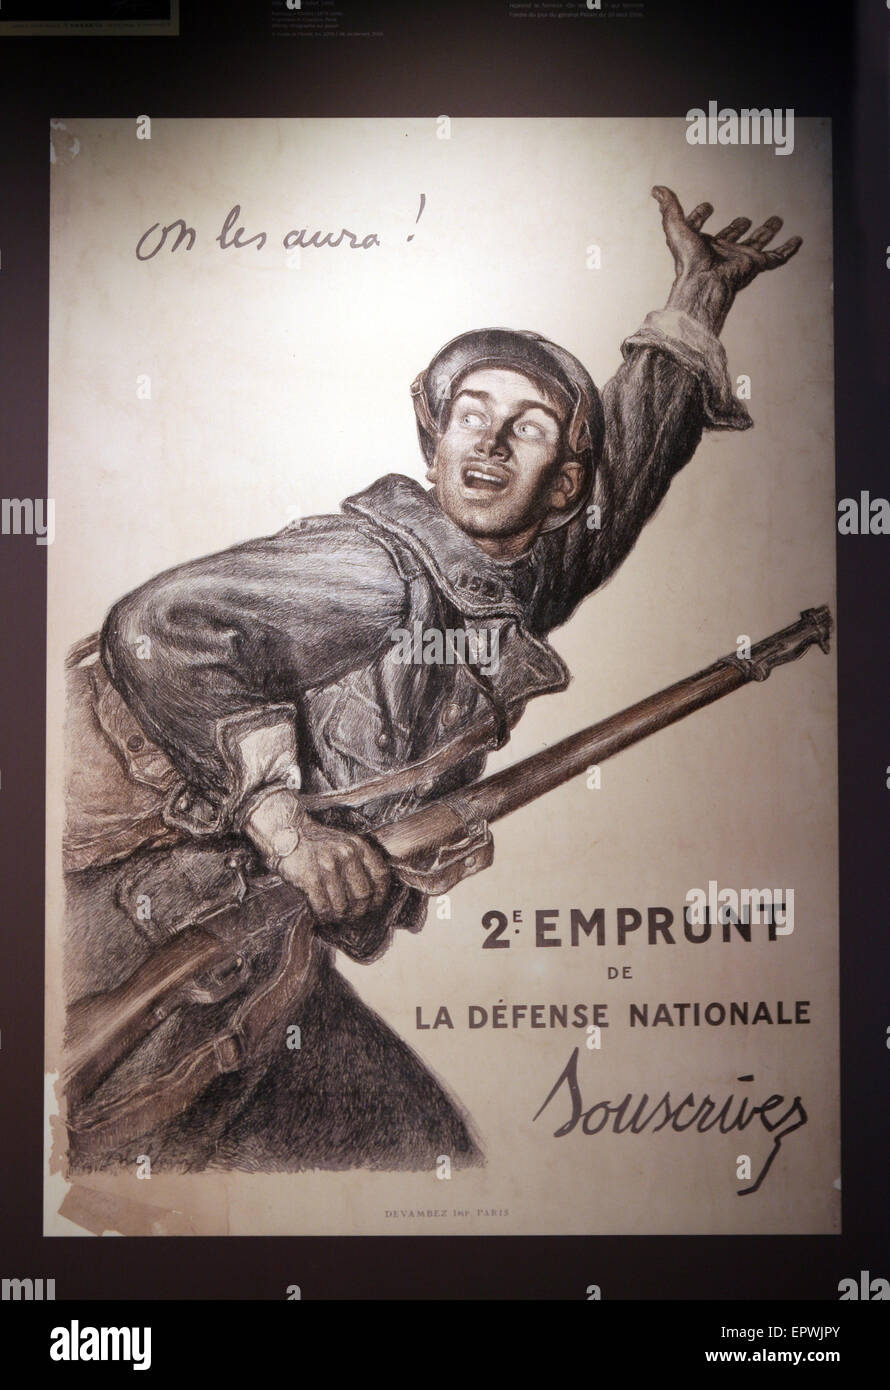 French army / military posters  from turn of the 19th century to first world war - Stock Image